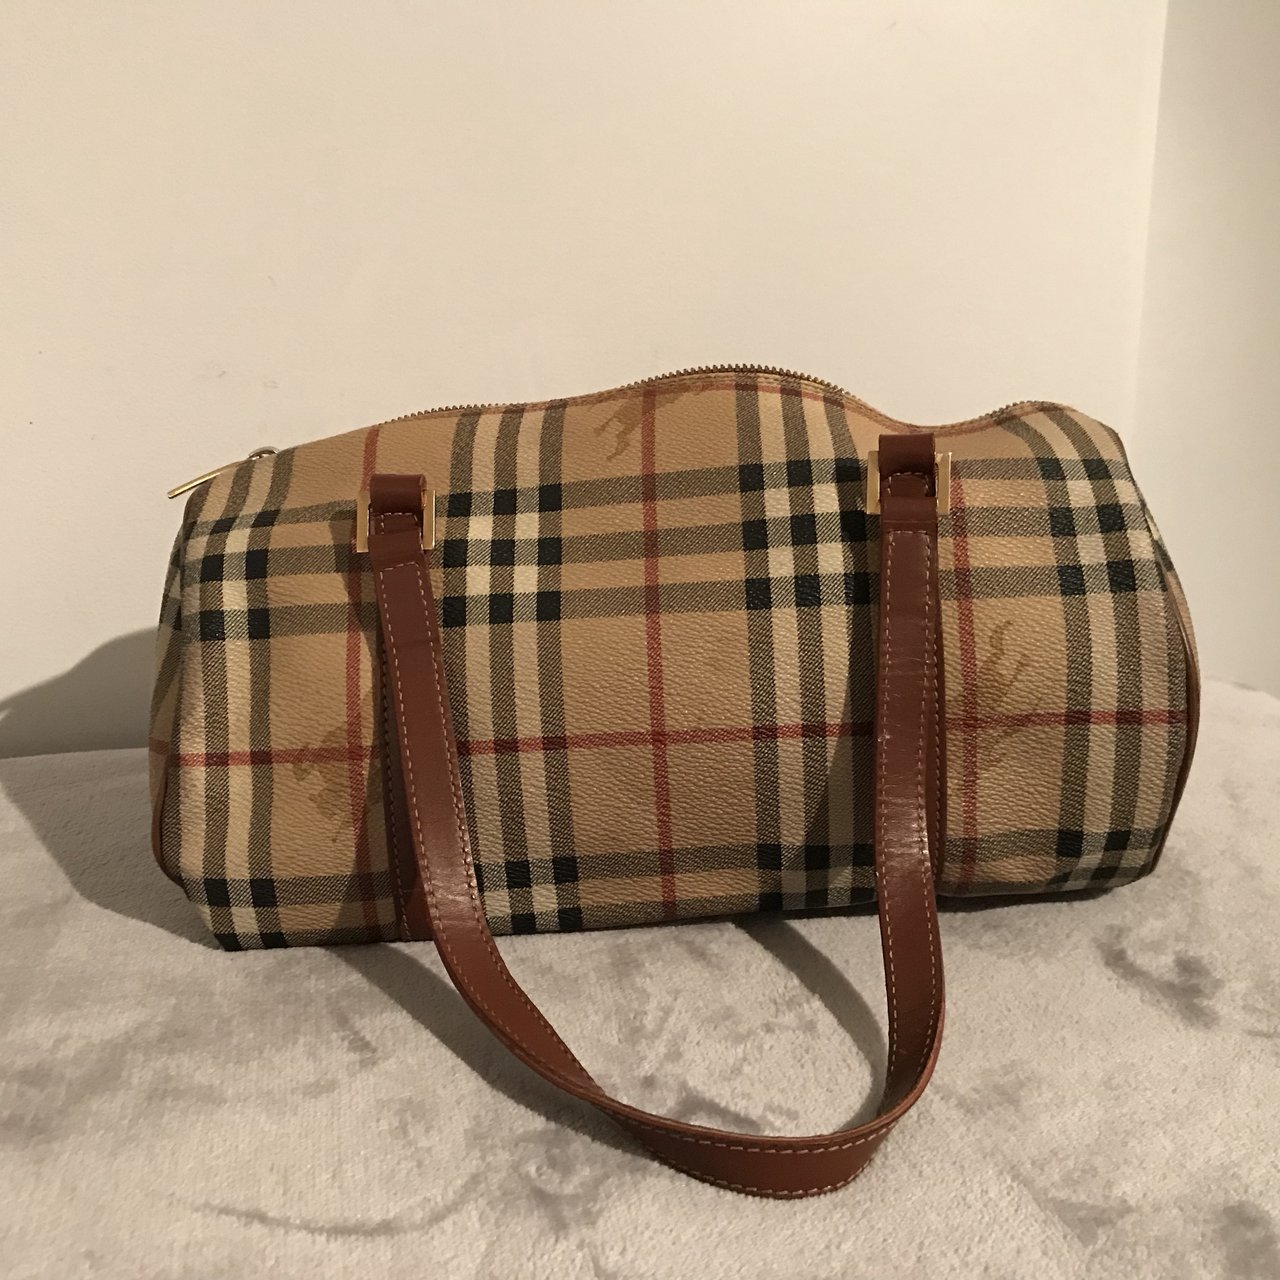 Genuine Burberry barrel bag. Bought f9e3457c93056